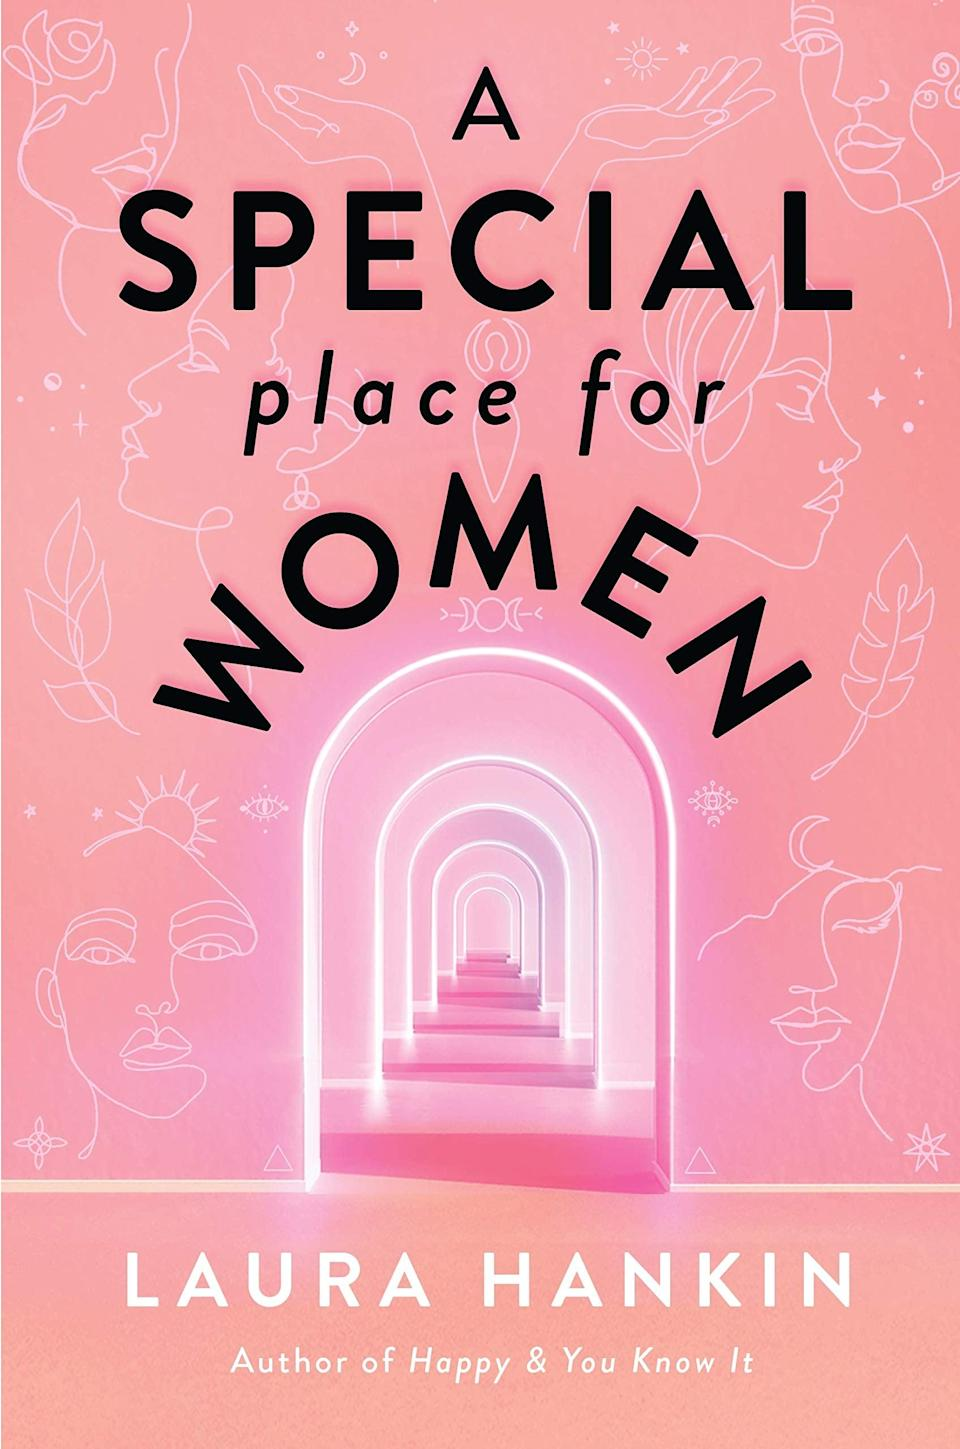 <p>Rumors of an elite women-only social club prove to be all too true in Laura Hankin's wickedly smart <span><strong>A Special Place For Women</strong></span>. When journalist Jillian Beckley infiltrates New York City's secretive club of powerful women, she expects to write a fluff piece at best. What she doesn't expect is for the club's members to be every bit as dangerous as they are elusive. </p> <p><em>Out May 11</em></p>